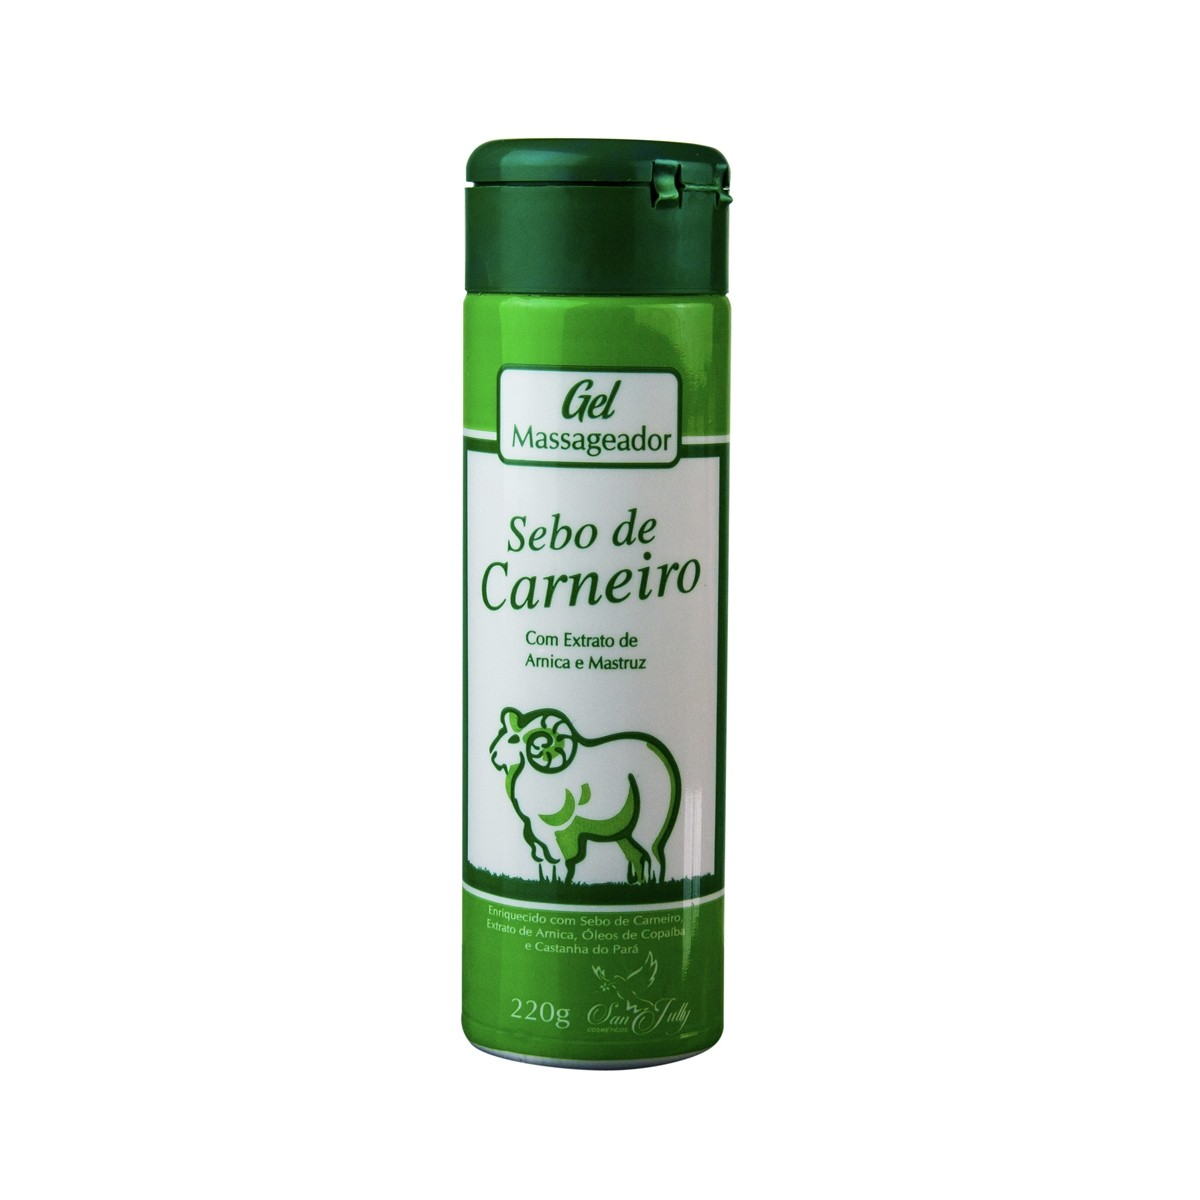 Gel Massageador Sebo de Carneiro 220g - San Jully